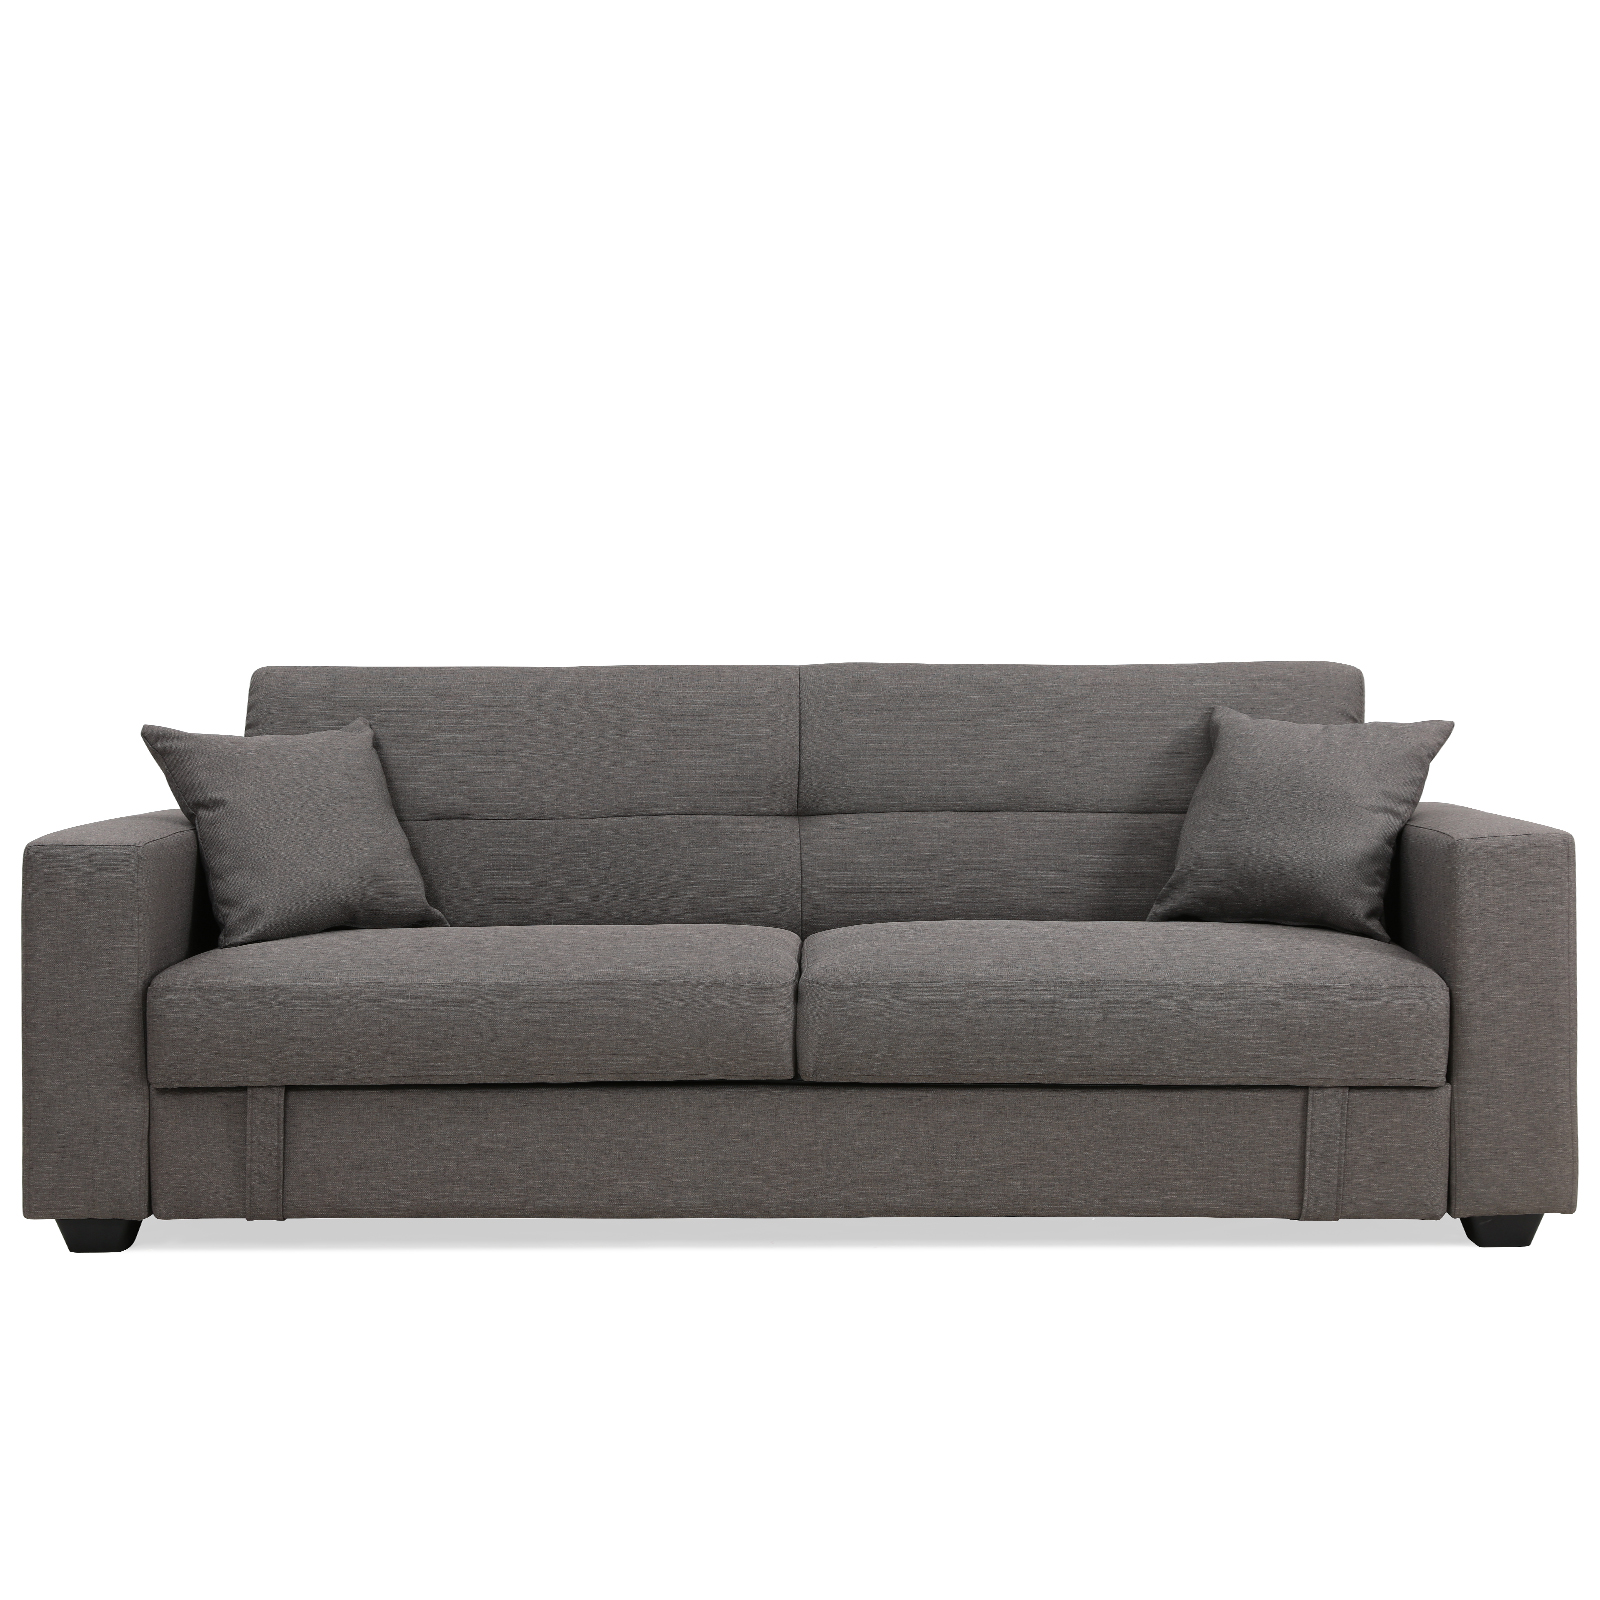 Erica Clack Contemporary Fabric 3 Seater Sofa Bed Lounge